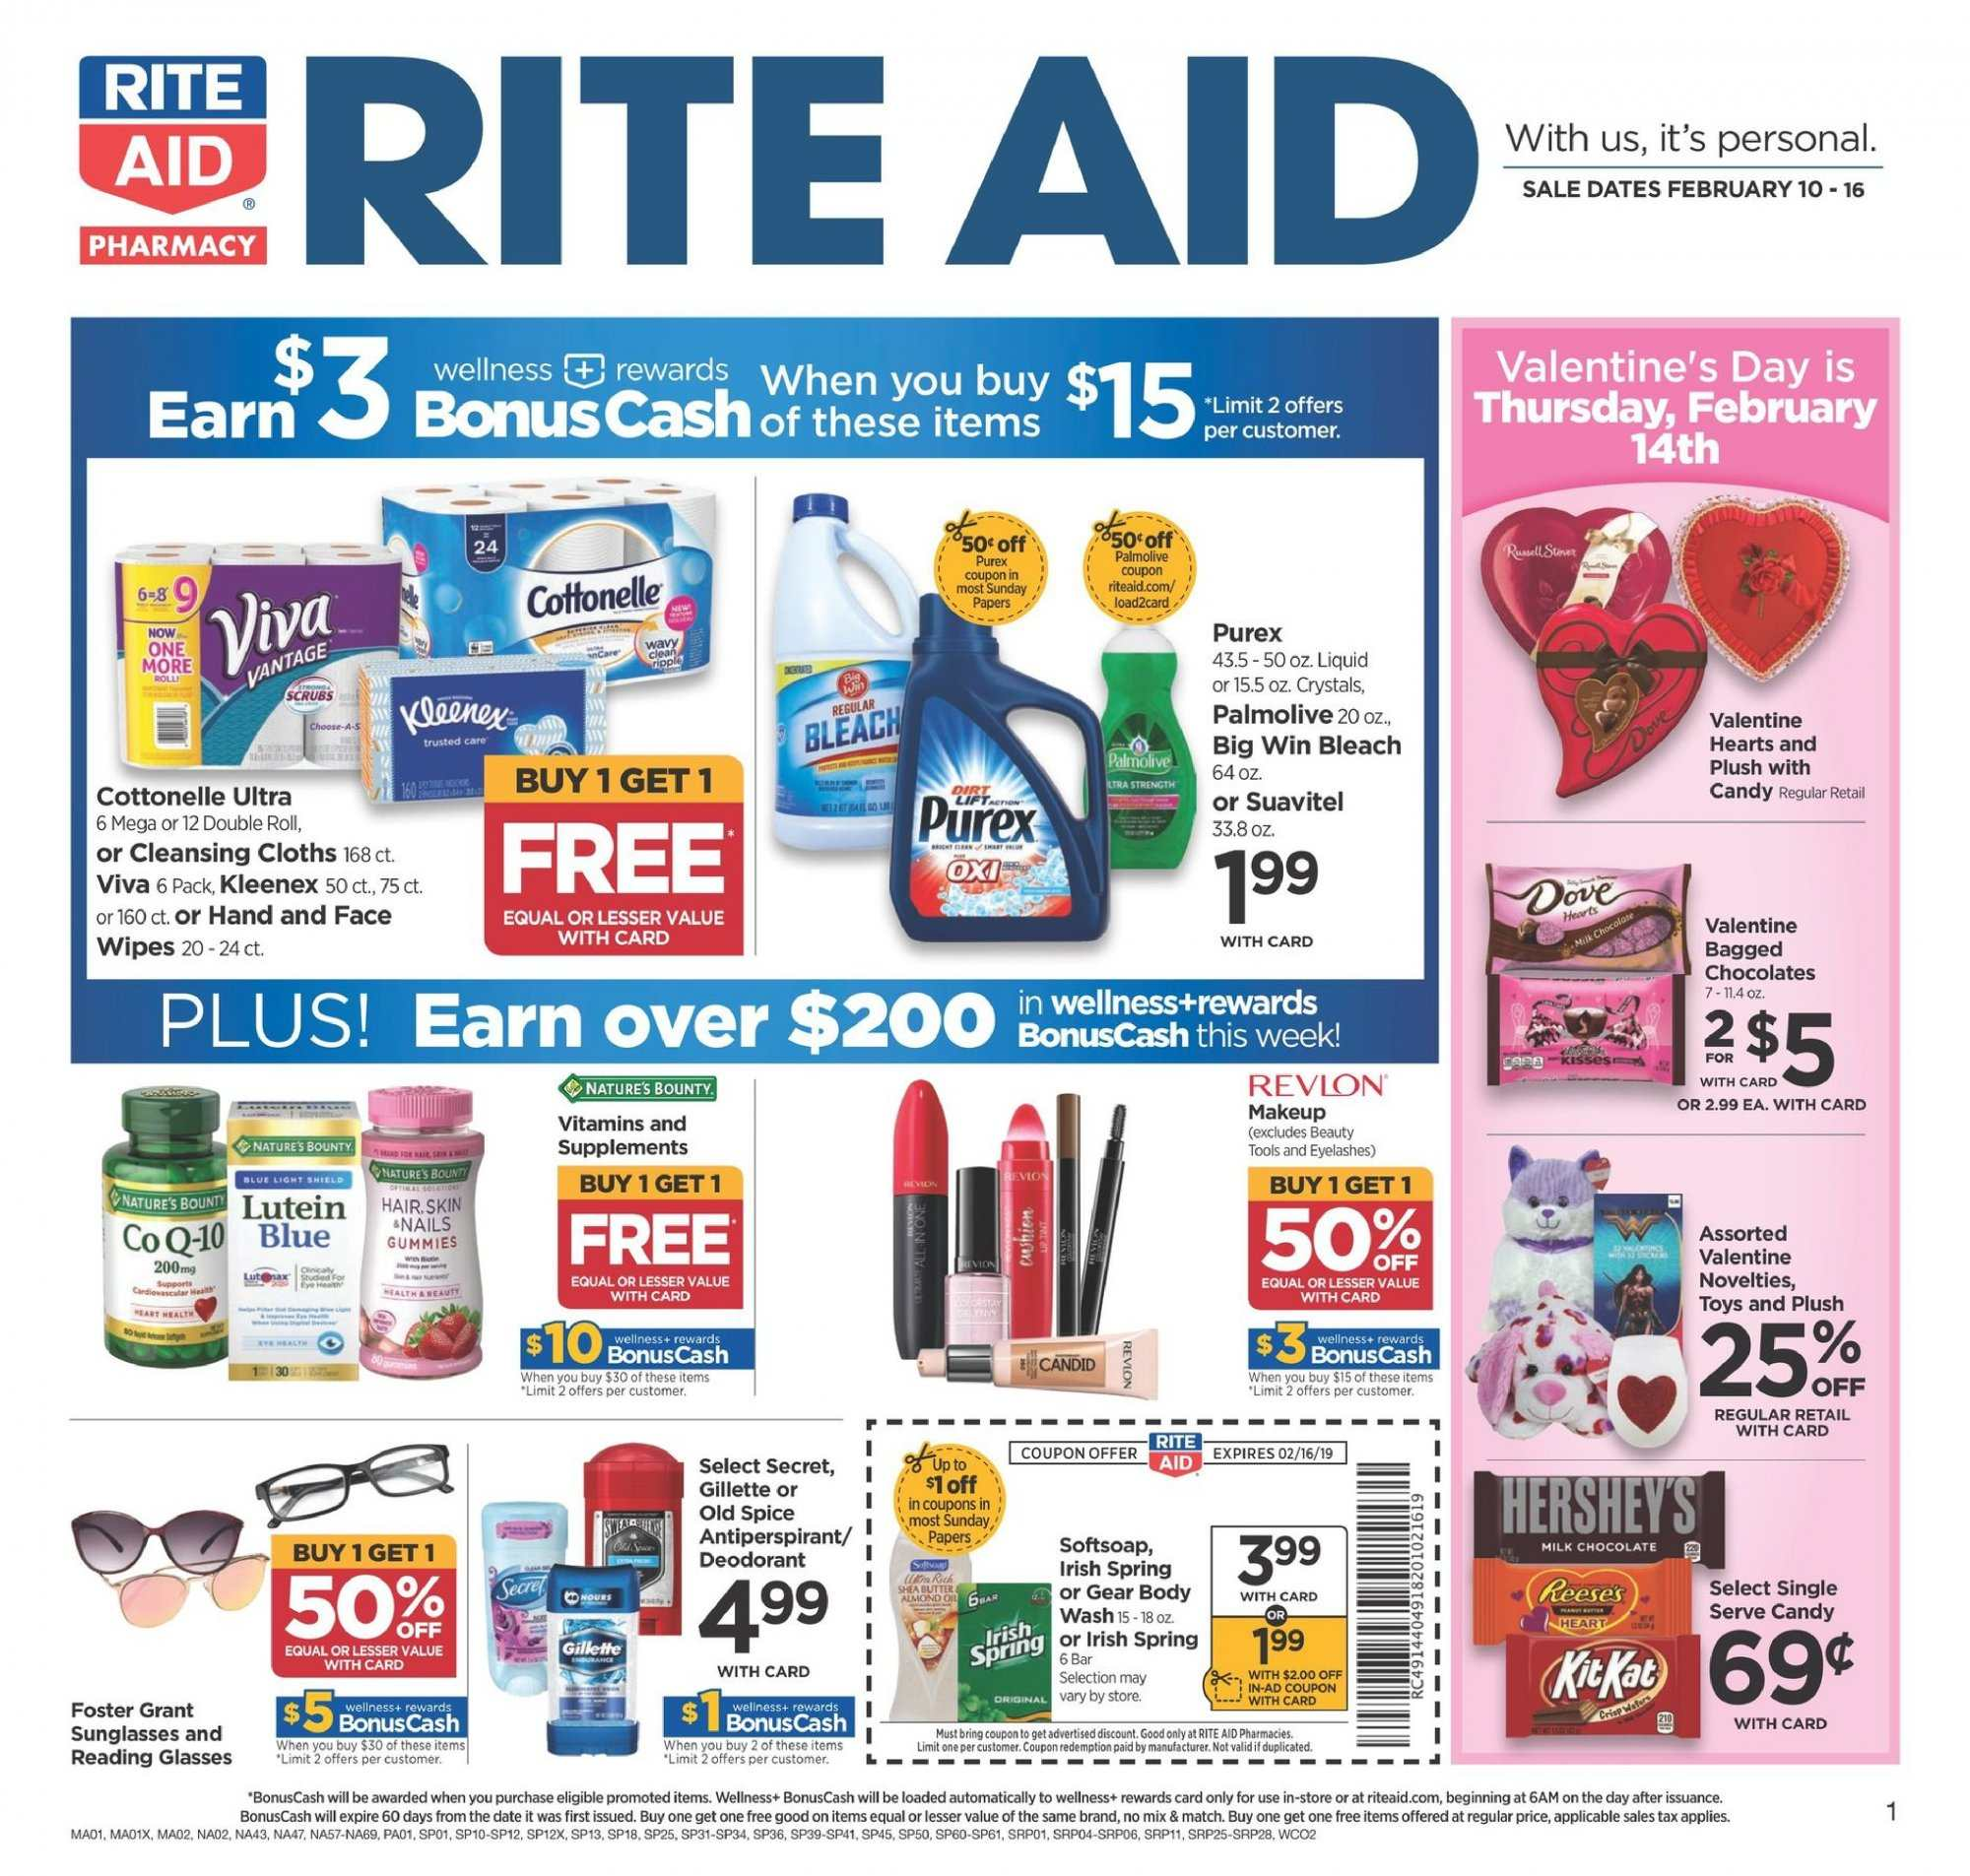 RITE AID Flyer - 02.10.2019 - 02.16.2019 - Sales products - candy, Bounty, Cottonelle, Kleenex, wipes, bleach, Softsoap, Old Spice, anti-perspirant, secret, Gillette, tools, makeup, eyelashes, glass, sunglasses, toys, Nature's Bounty. Page 1.